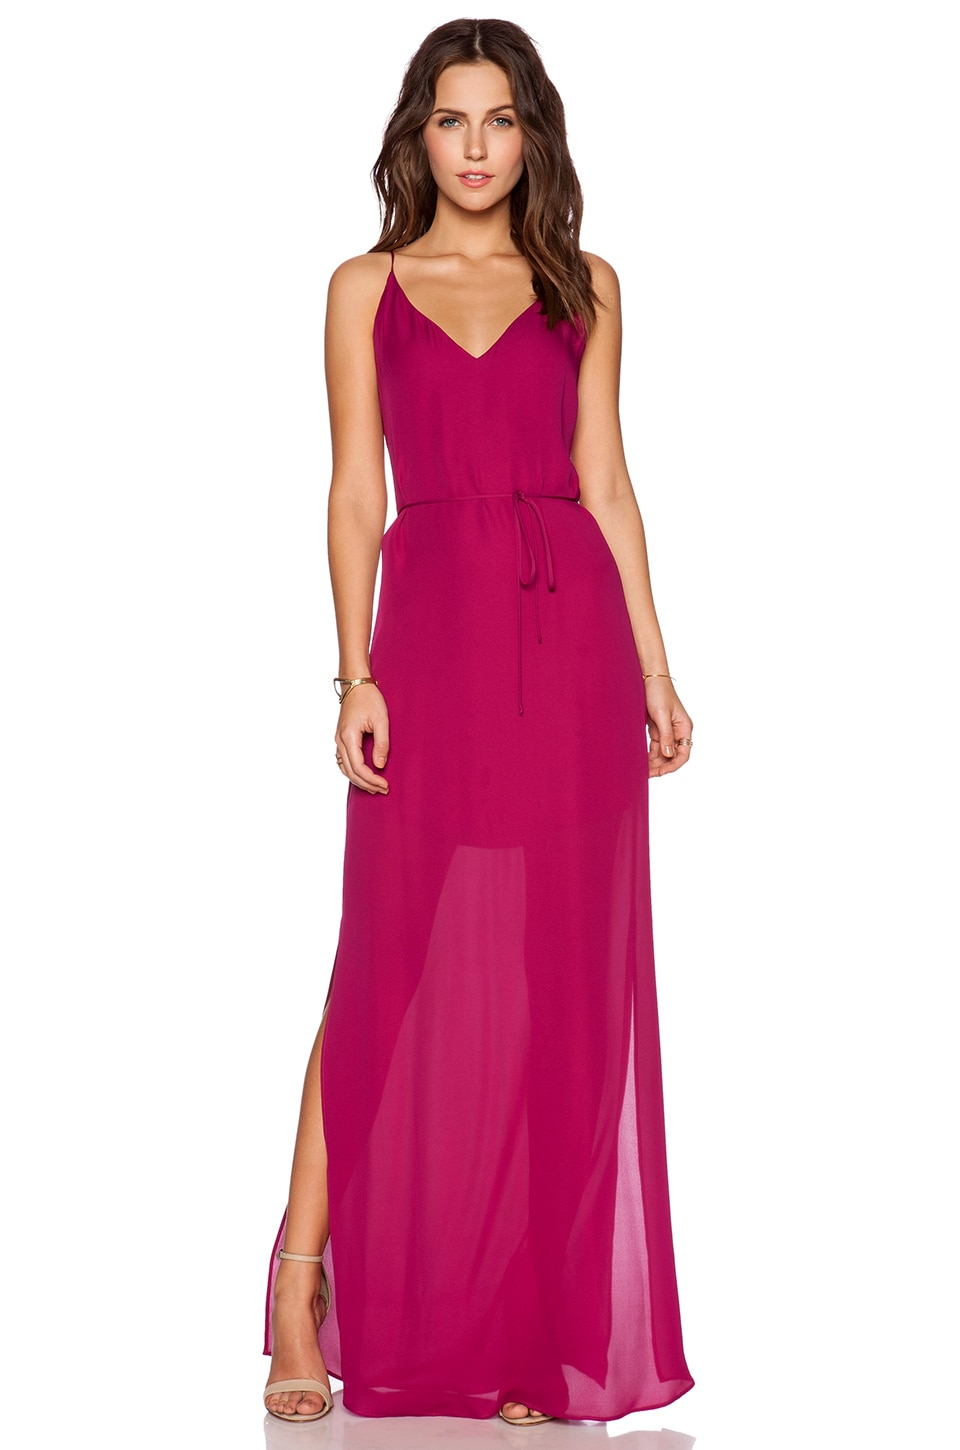 Rory Beca MAID by Yifat Oren Harlow Gown in Magenta